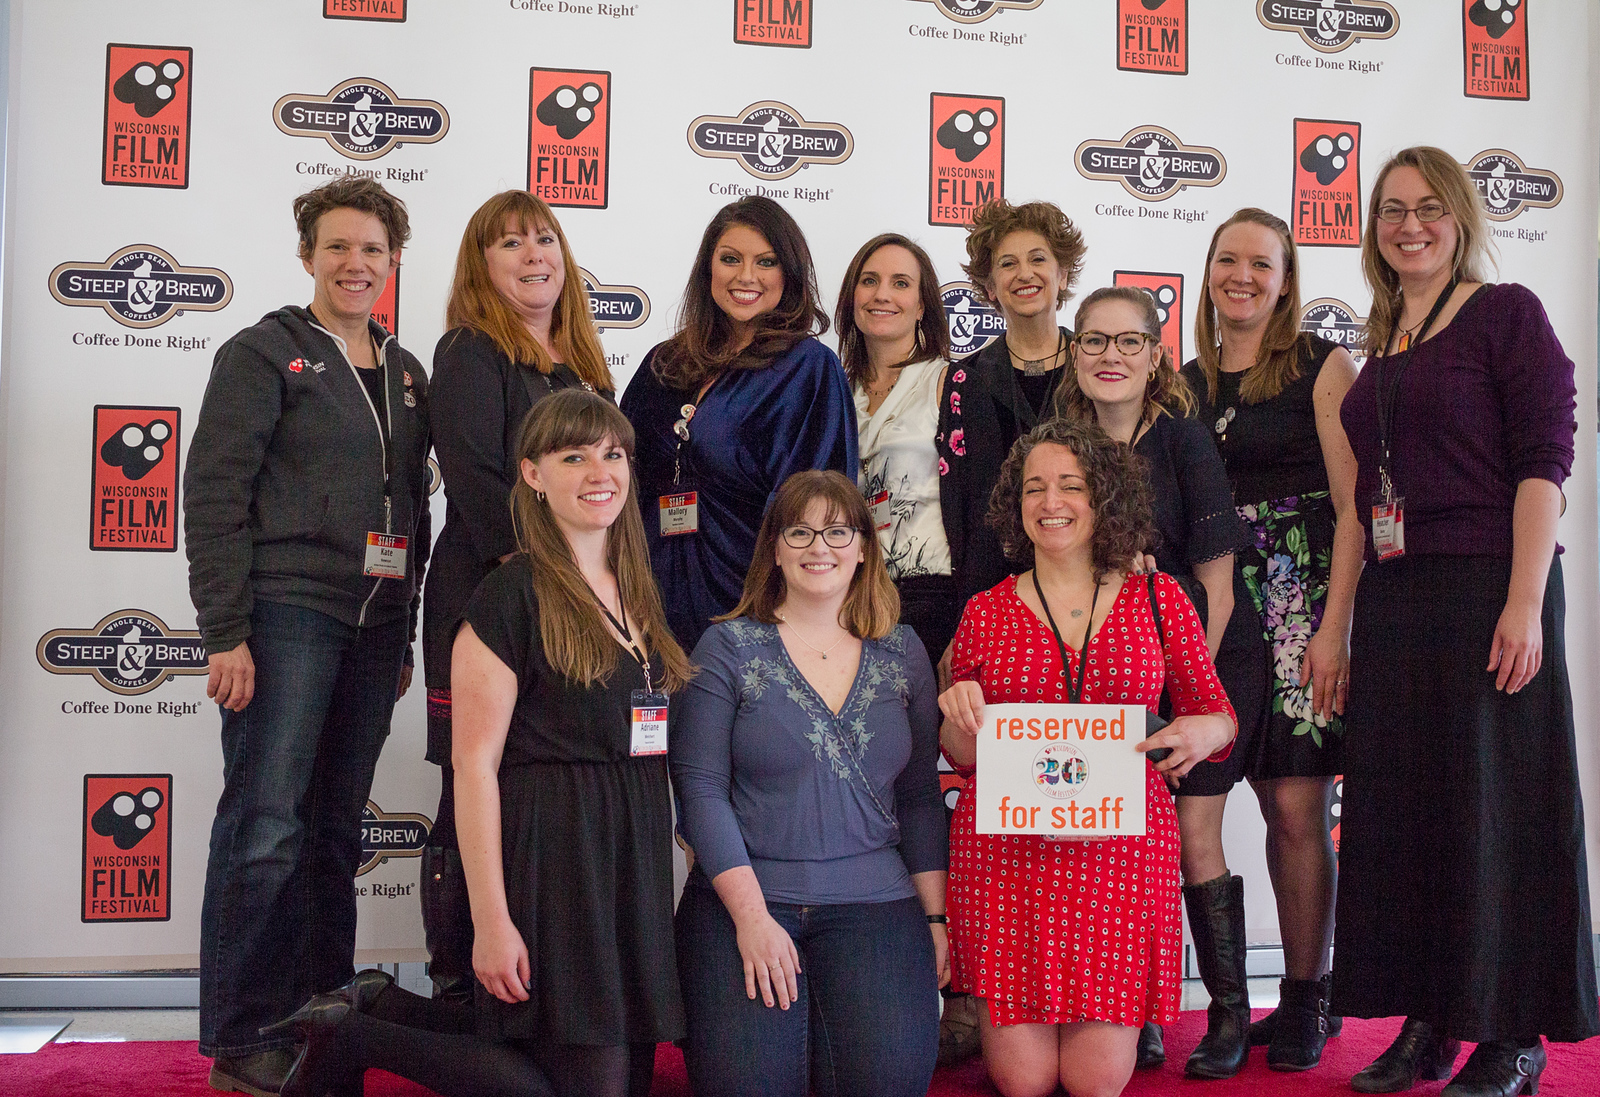 Some of the faces behind the Fest: top row (l-r) Kate Hewson, Staci Francis, Mallory Murphy, Cathy Sheets, Terry Kerr, Anna January, Sarah Chapeau, Heather Owens bottom row (l-r): Adriane Melchert, Kirsten Brooks, Lisa Spierer